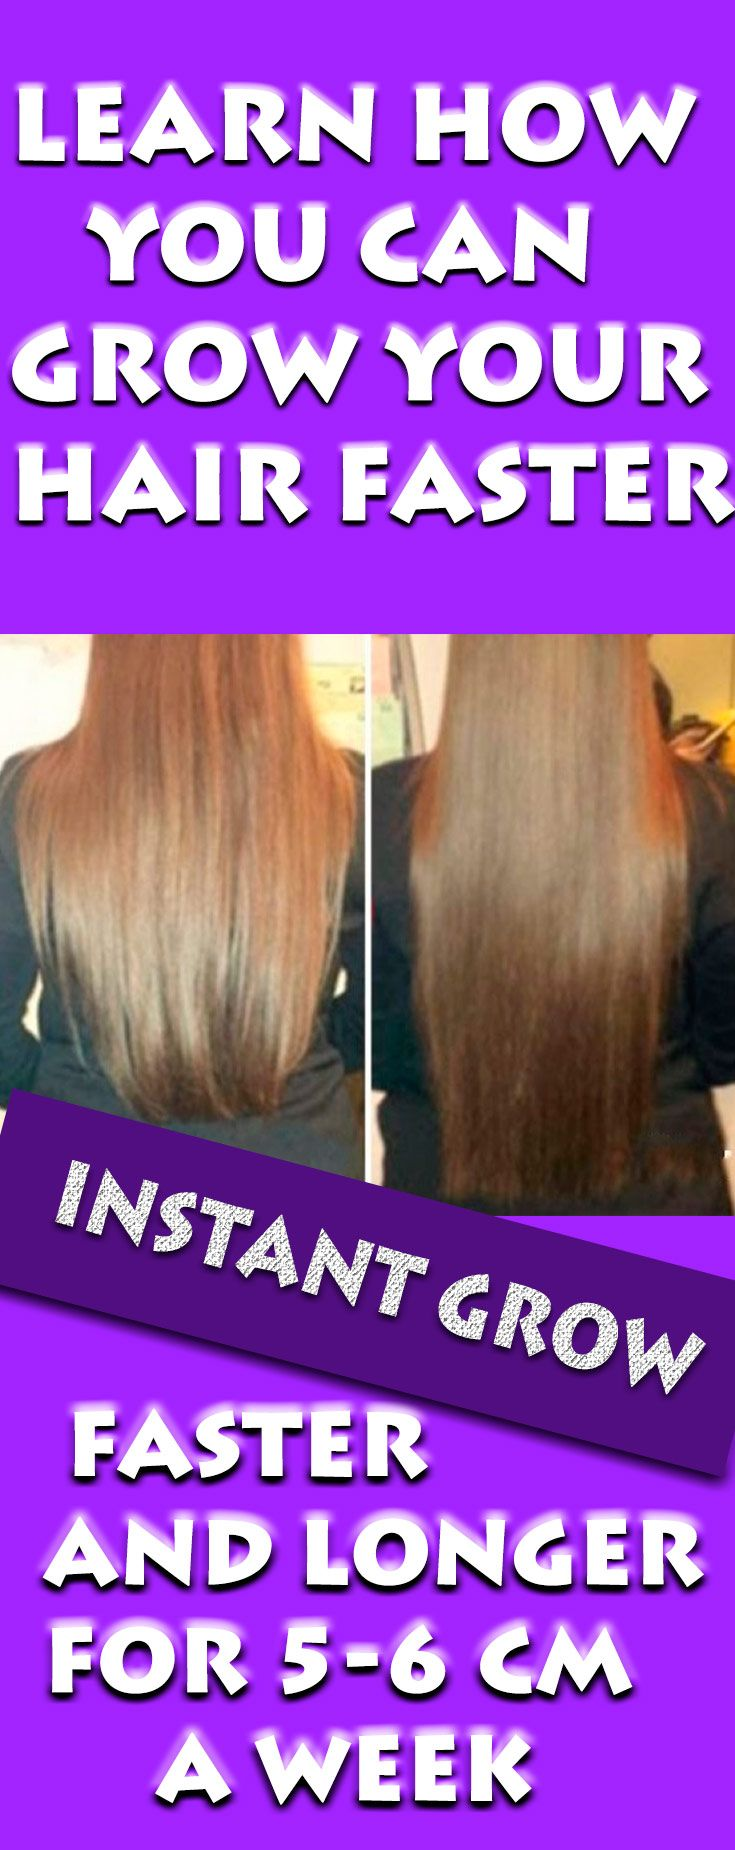 Every woman's dream is to have a healthy, long and shiny hair. Still, many women who have problems with thinning hair, fail to put long hair. Fortunately, you can deal with this problem by using this trick at home and so it will help you to grow your hair faster and longer by 5-6 cm per week.